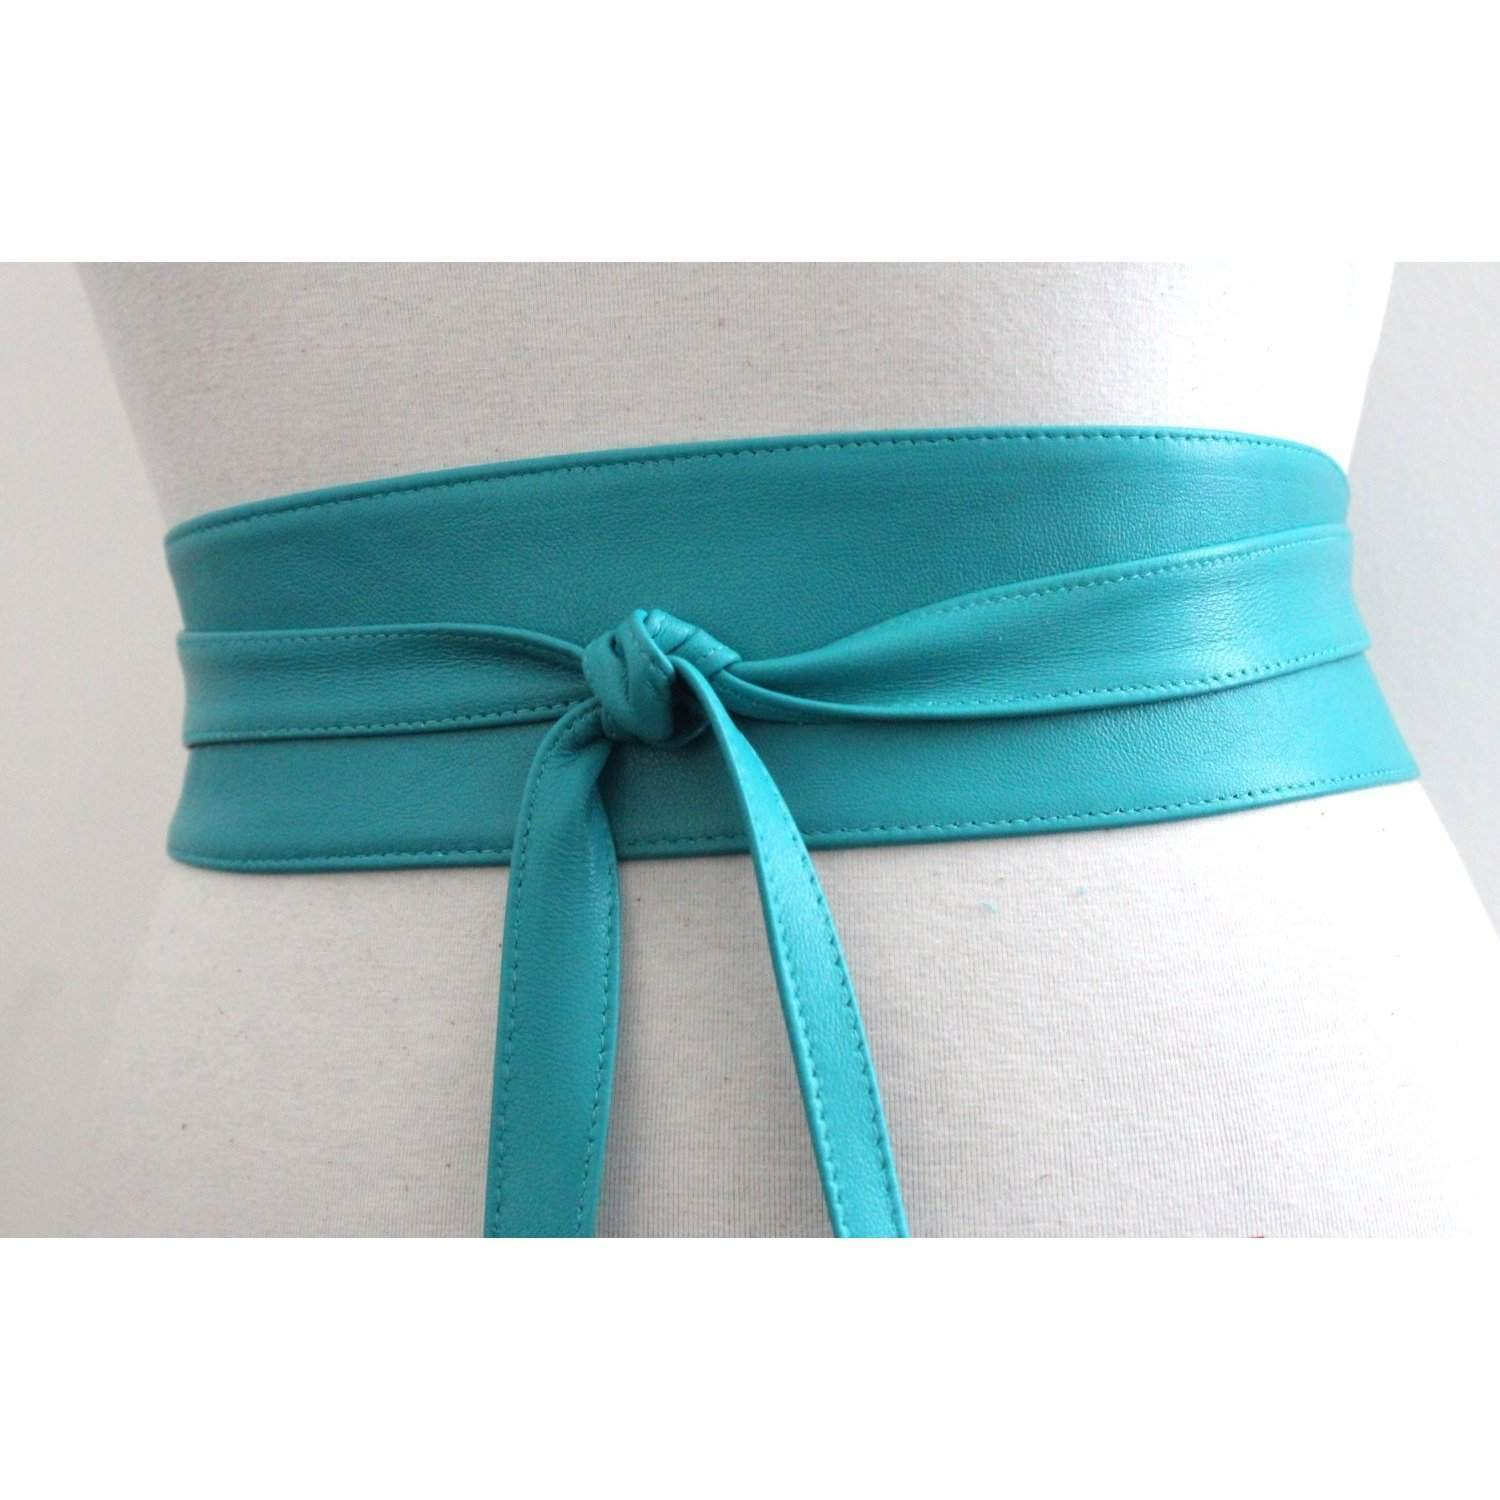 Turquoise Belt | Turquoise Leather Obi Belt  | Sash belt | Corset Belt | Bridal Sash Belt | Obi Belt | Plus Size Accessory | Wrap Tie belt - loveyaayaa